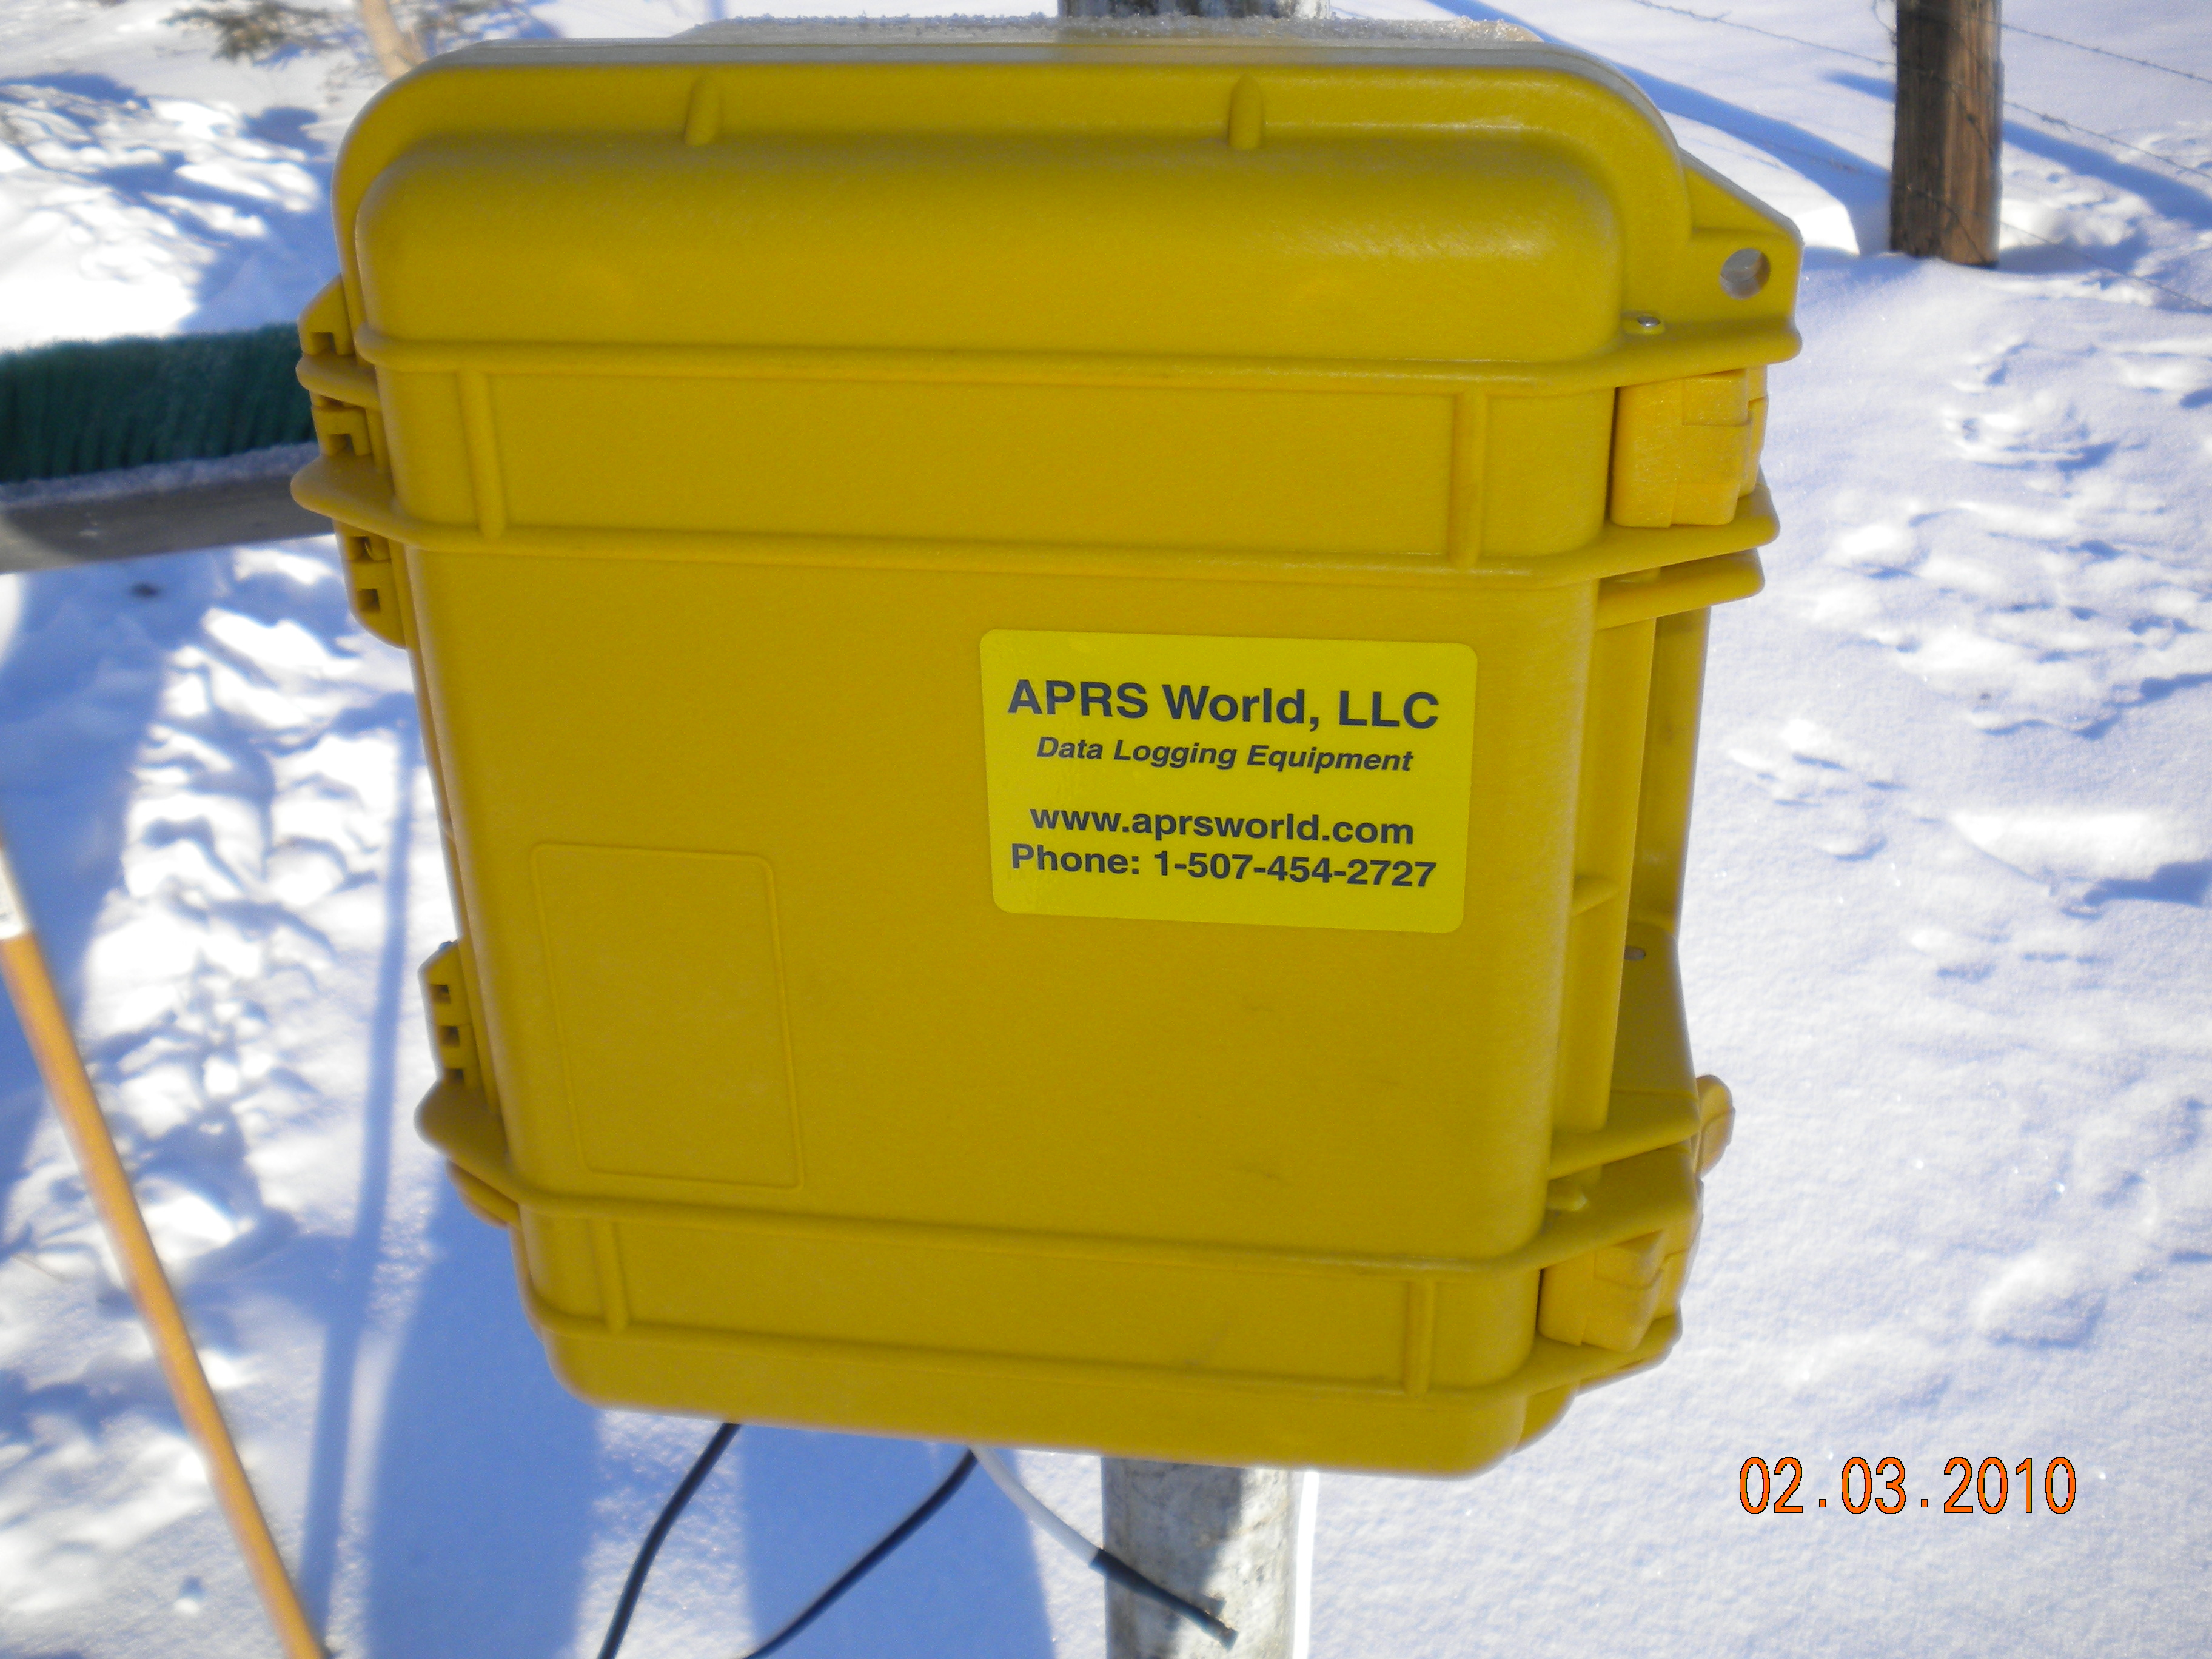 Pelican case protecting the Wind Data Logger from the extreme environment in Alaska.